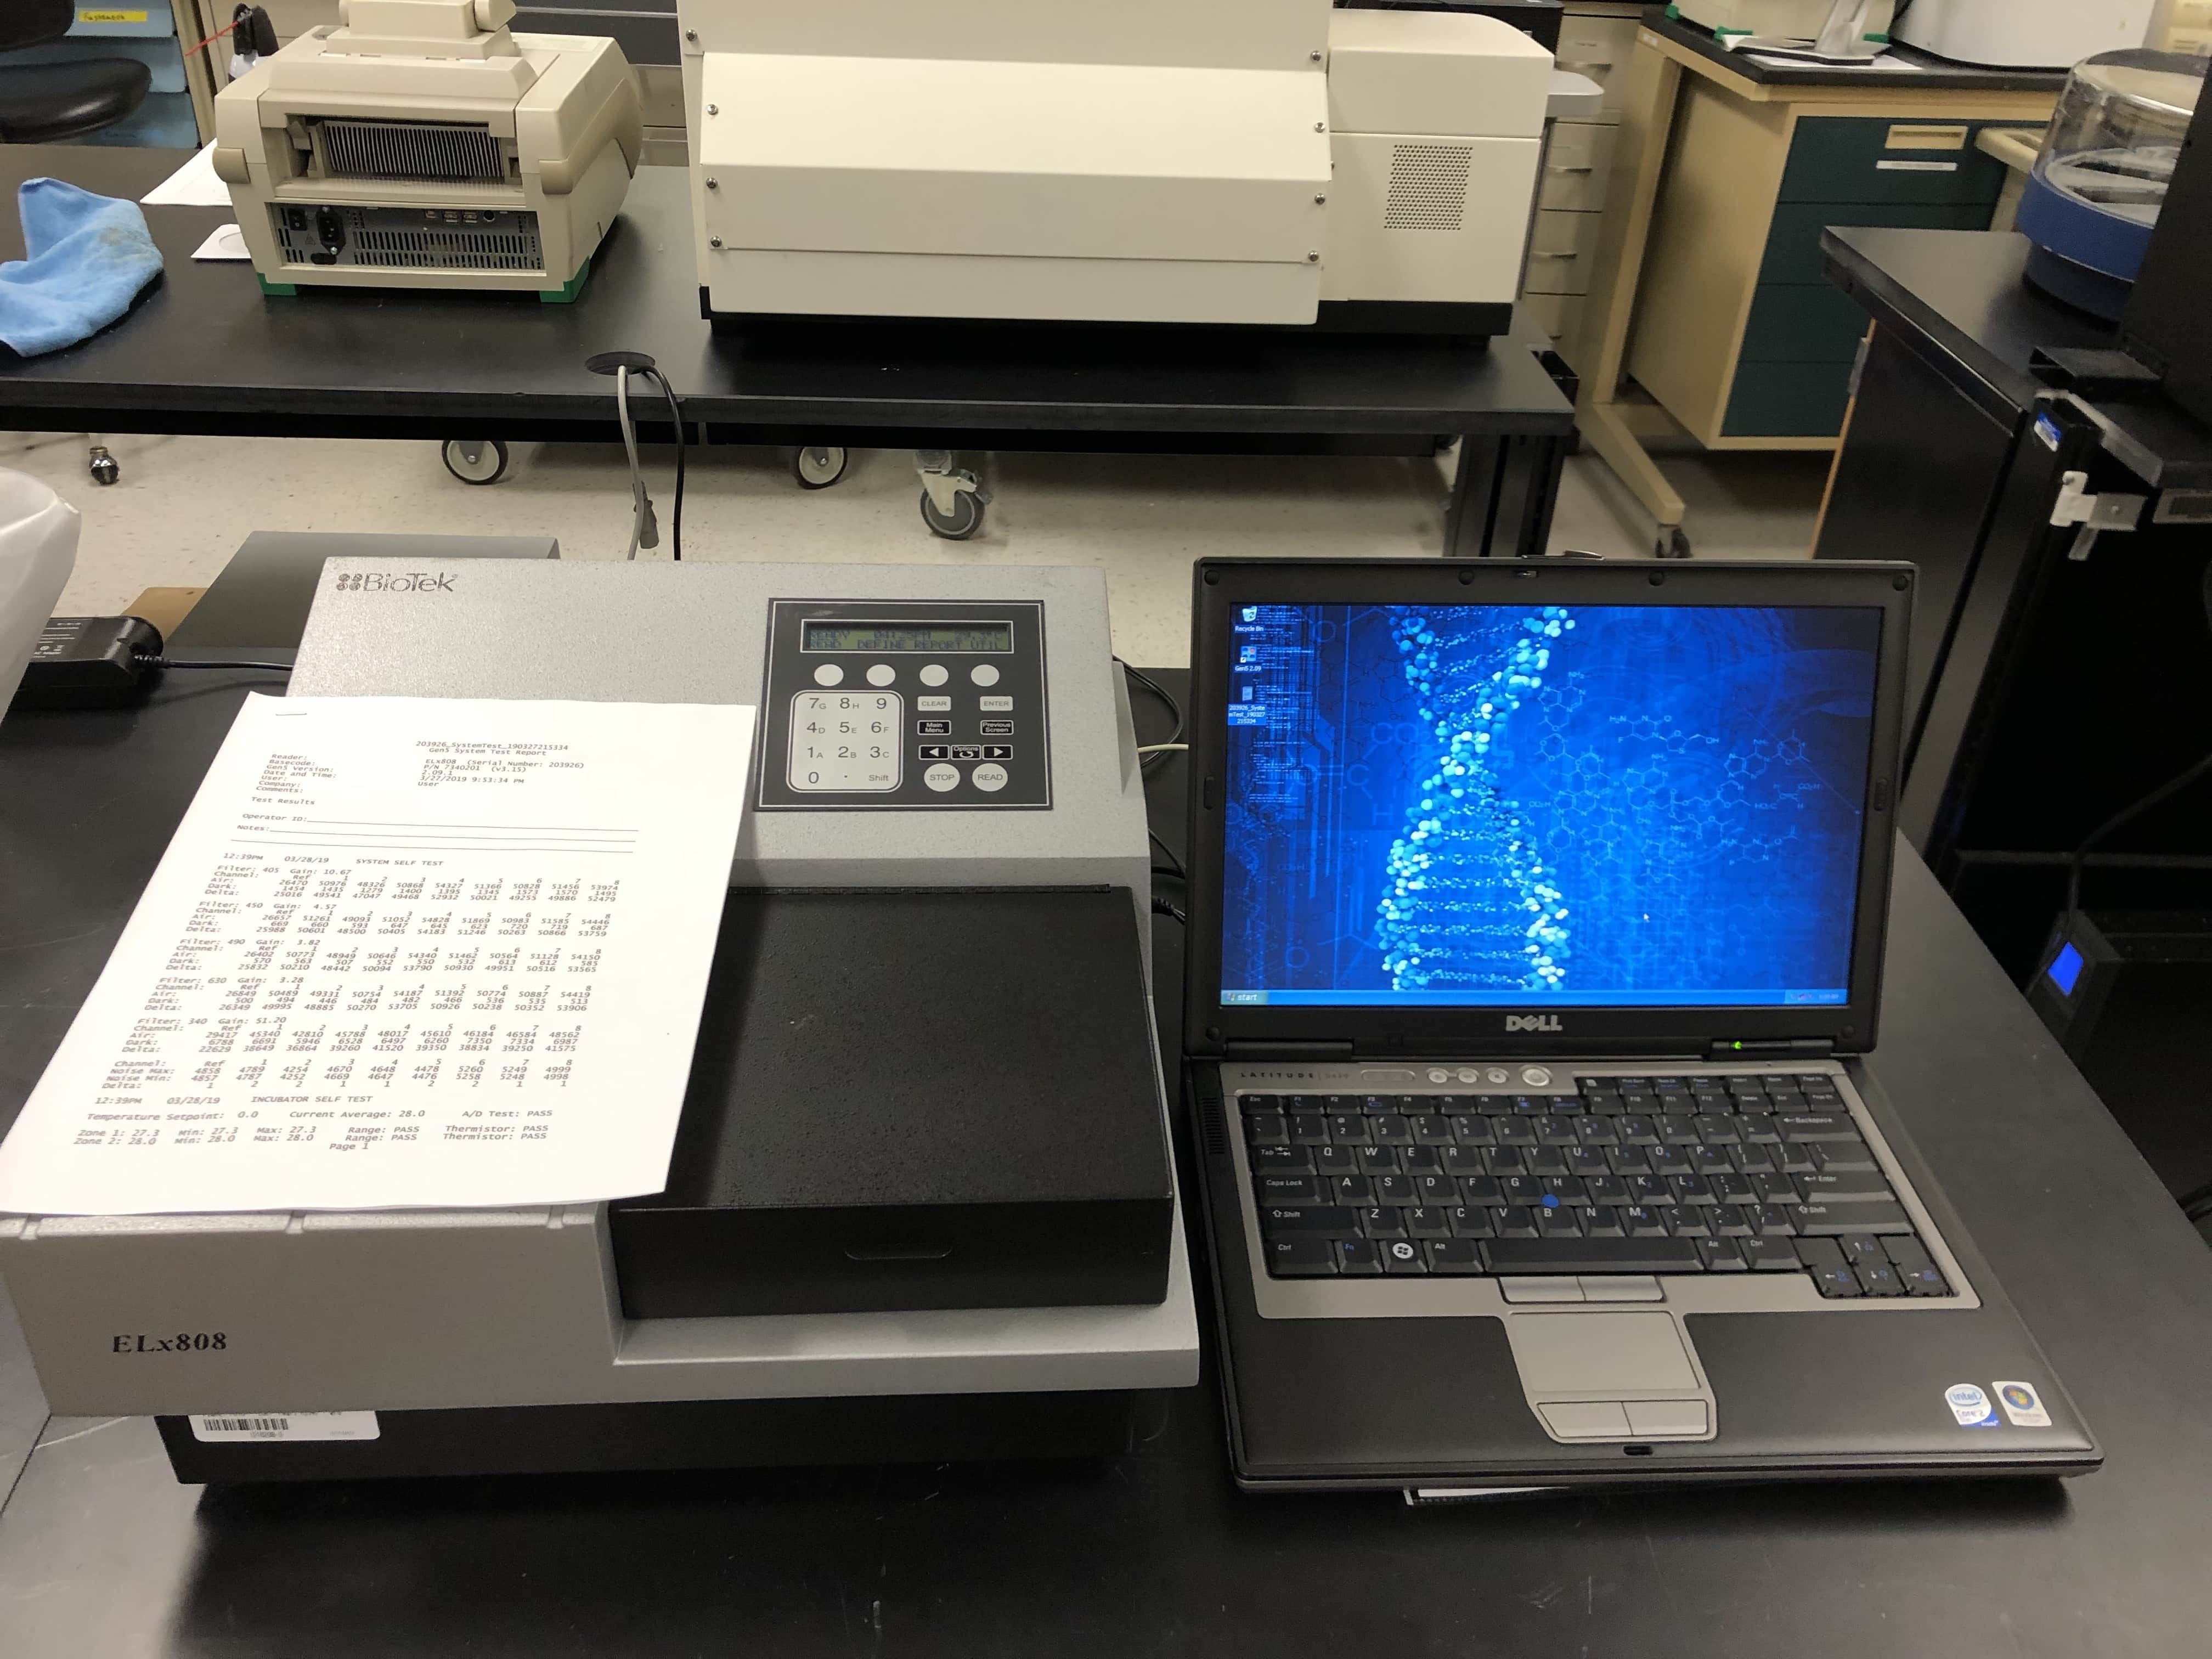 BIOTEK ELX808IU 96 well ABS MicroPlate Reader System w/ GEN5 Anayisis SW, Incubation-New PM testing